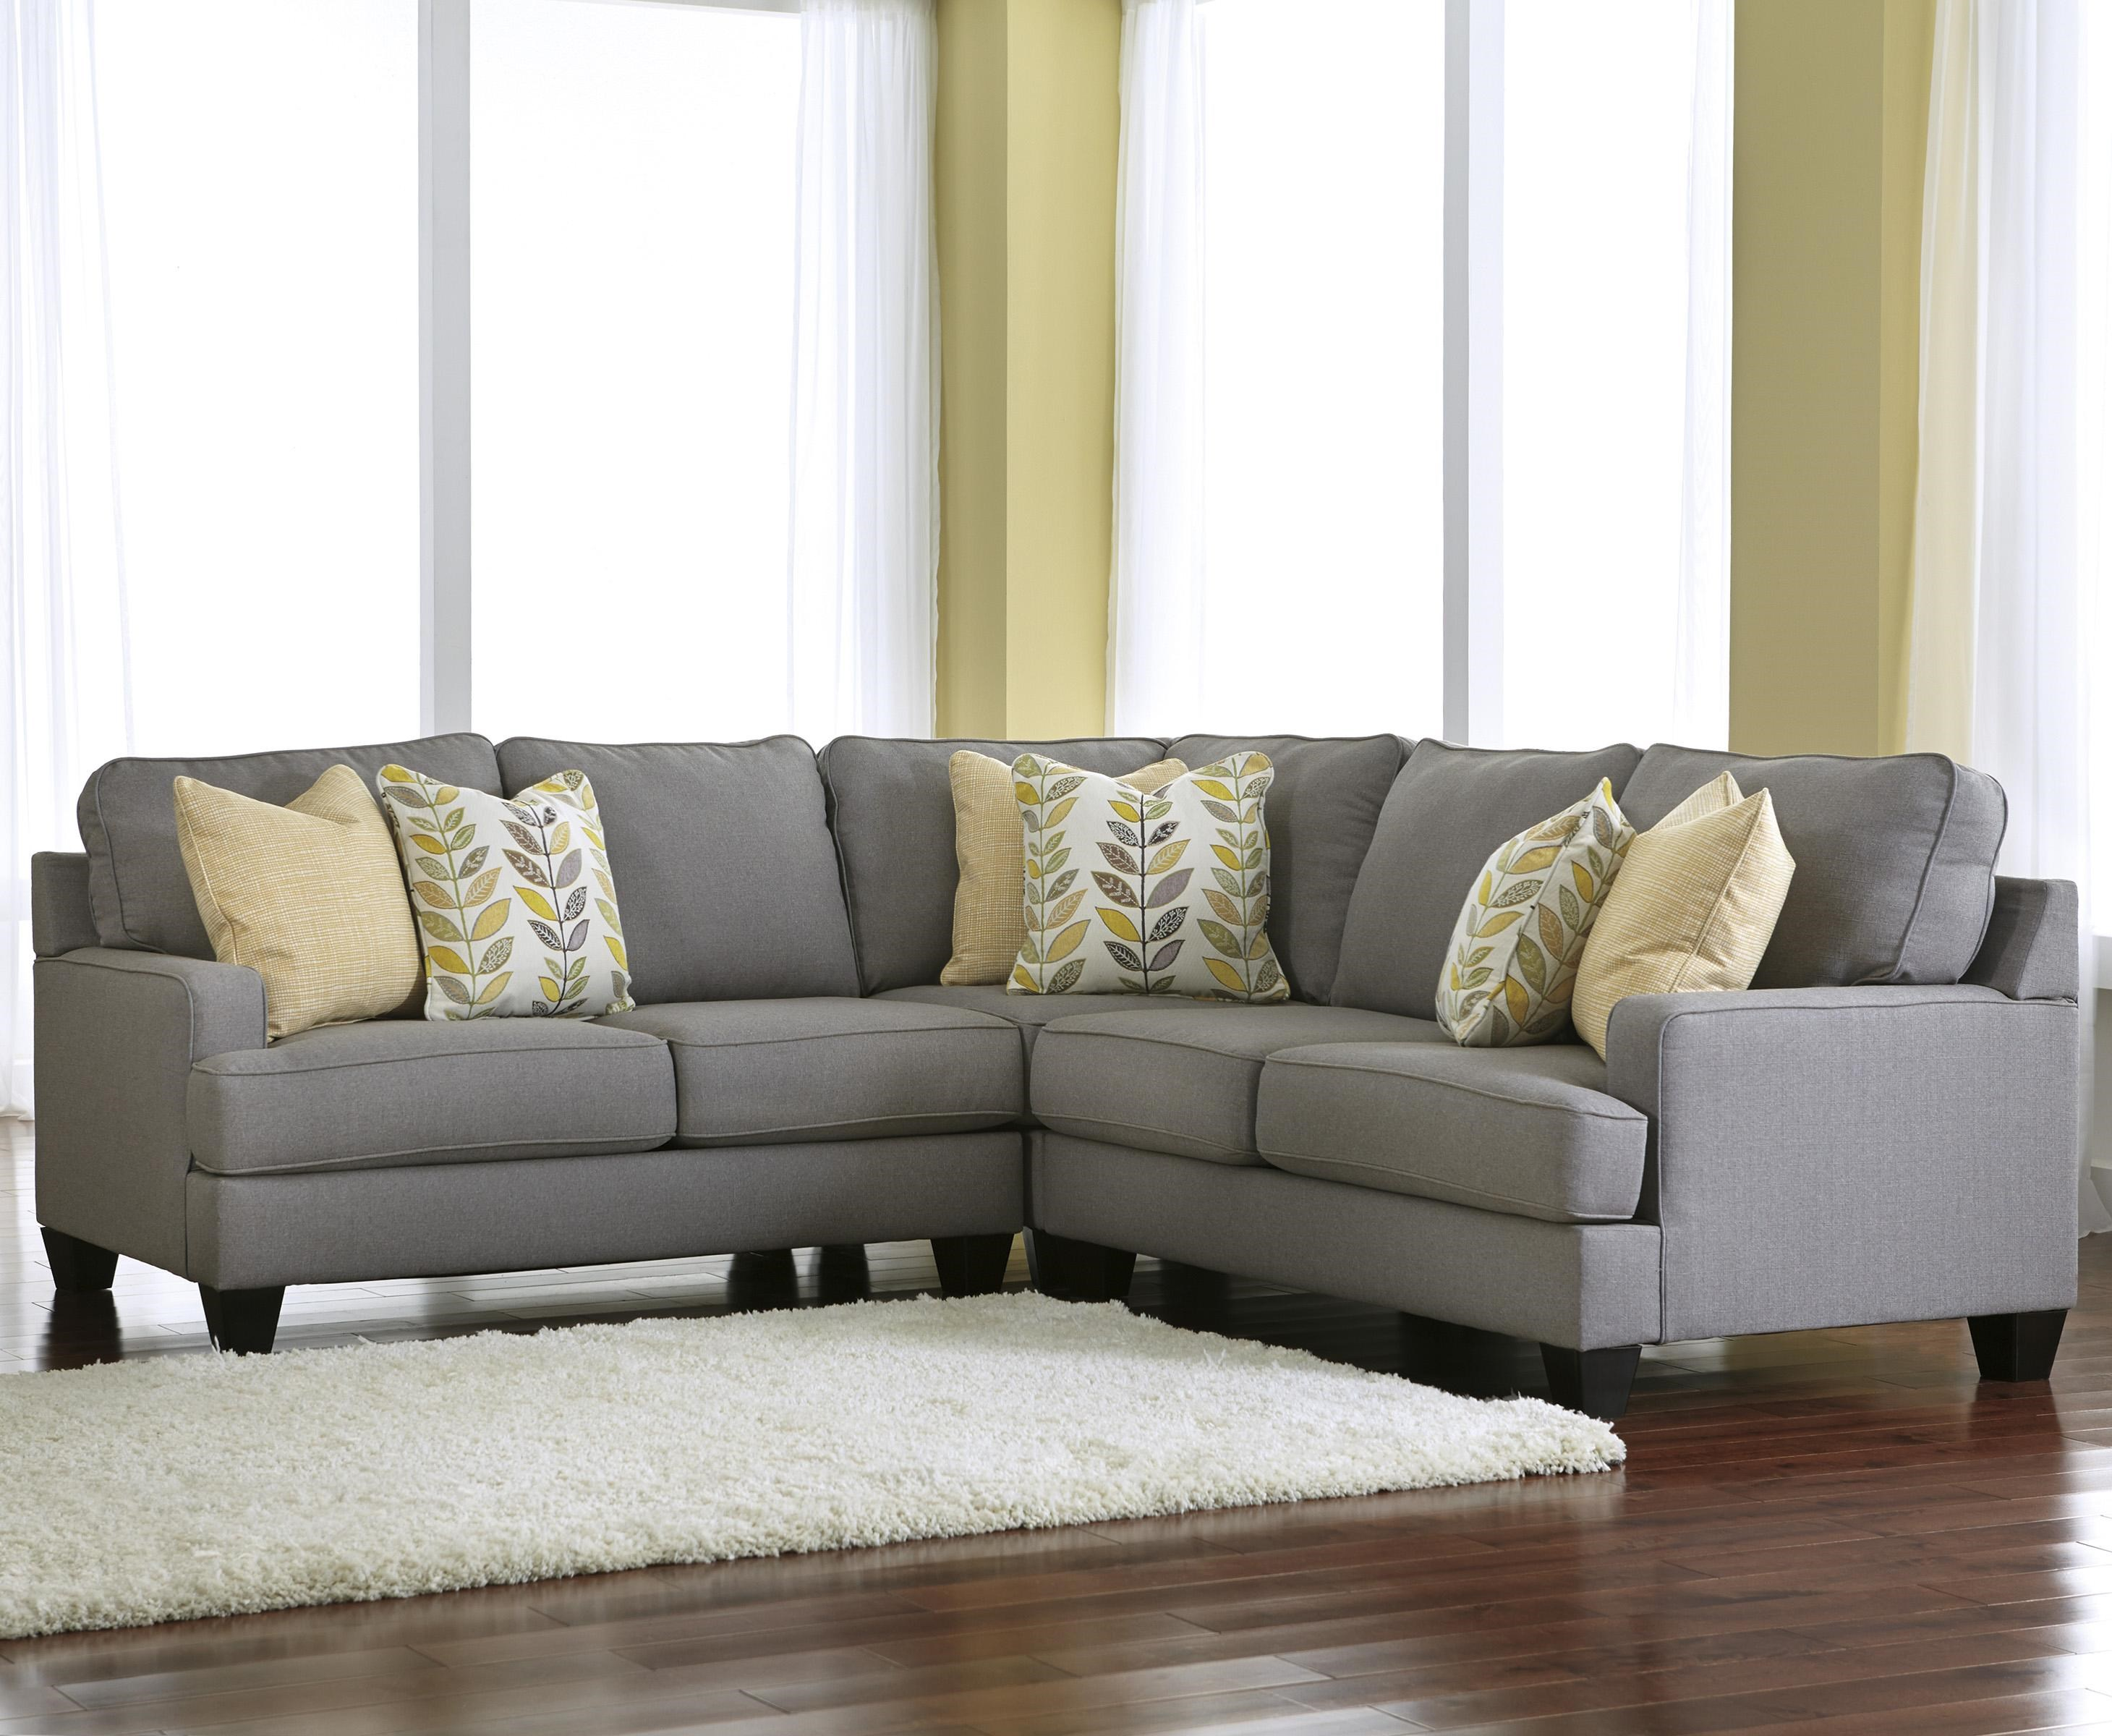 Superbe StyleLine Chamberly   Alloy Modern 3 Piece Corner Sectional Sofa With  Reversible Seat Cushions